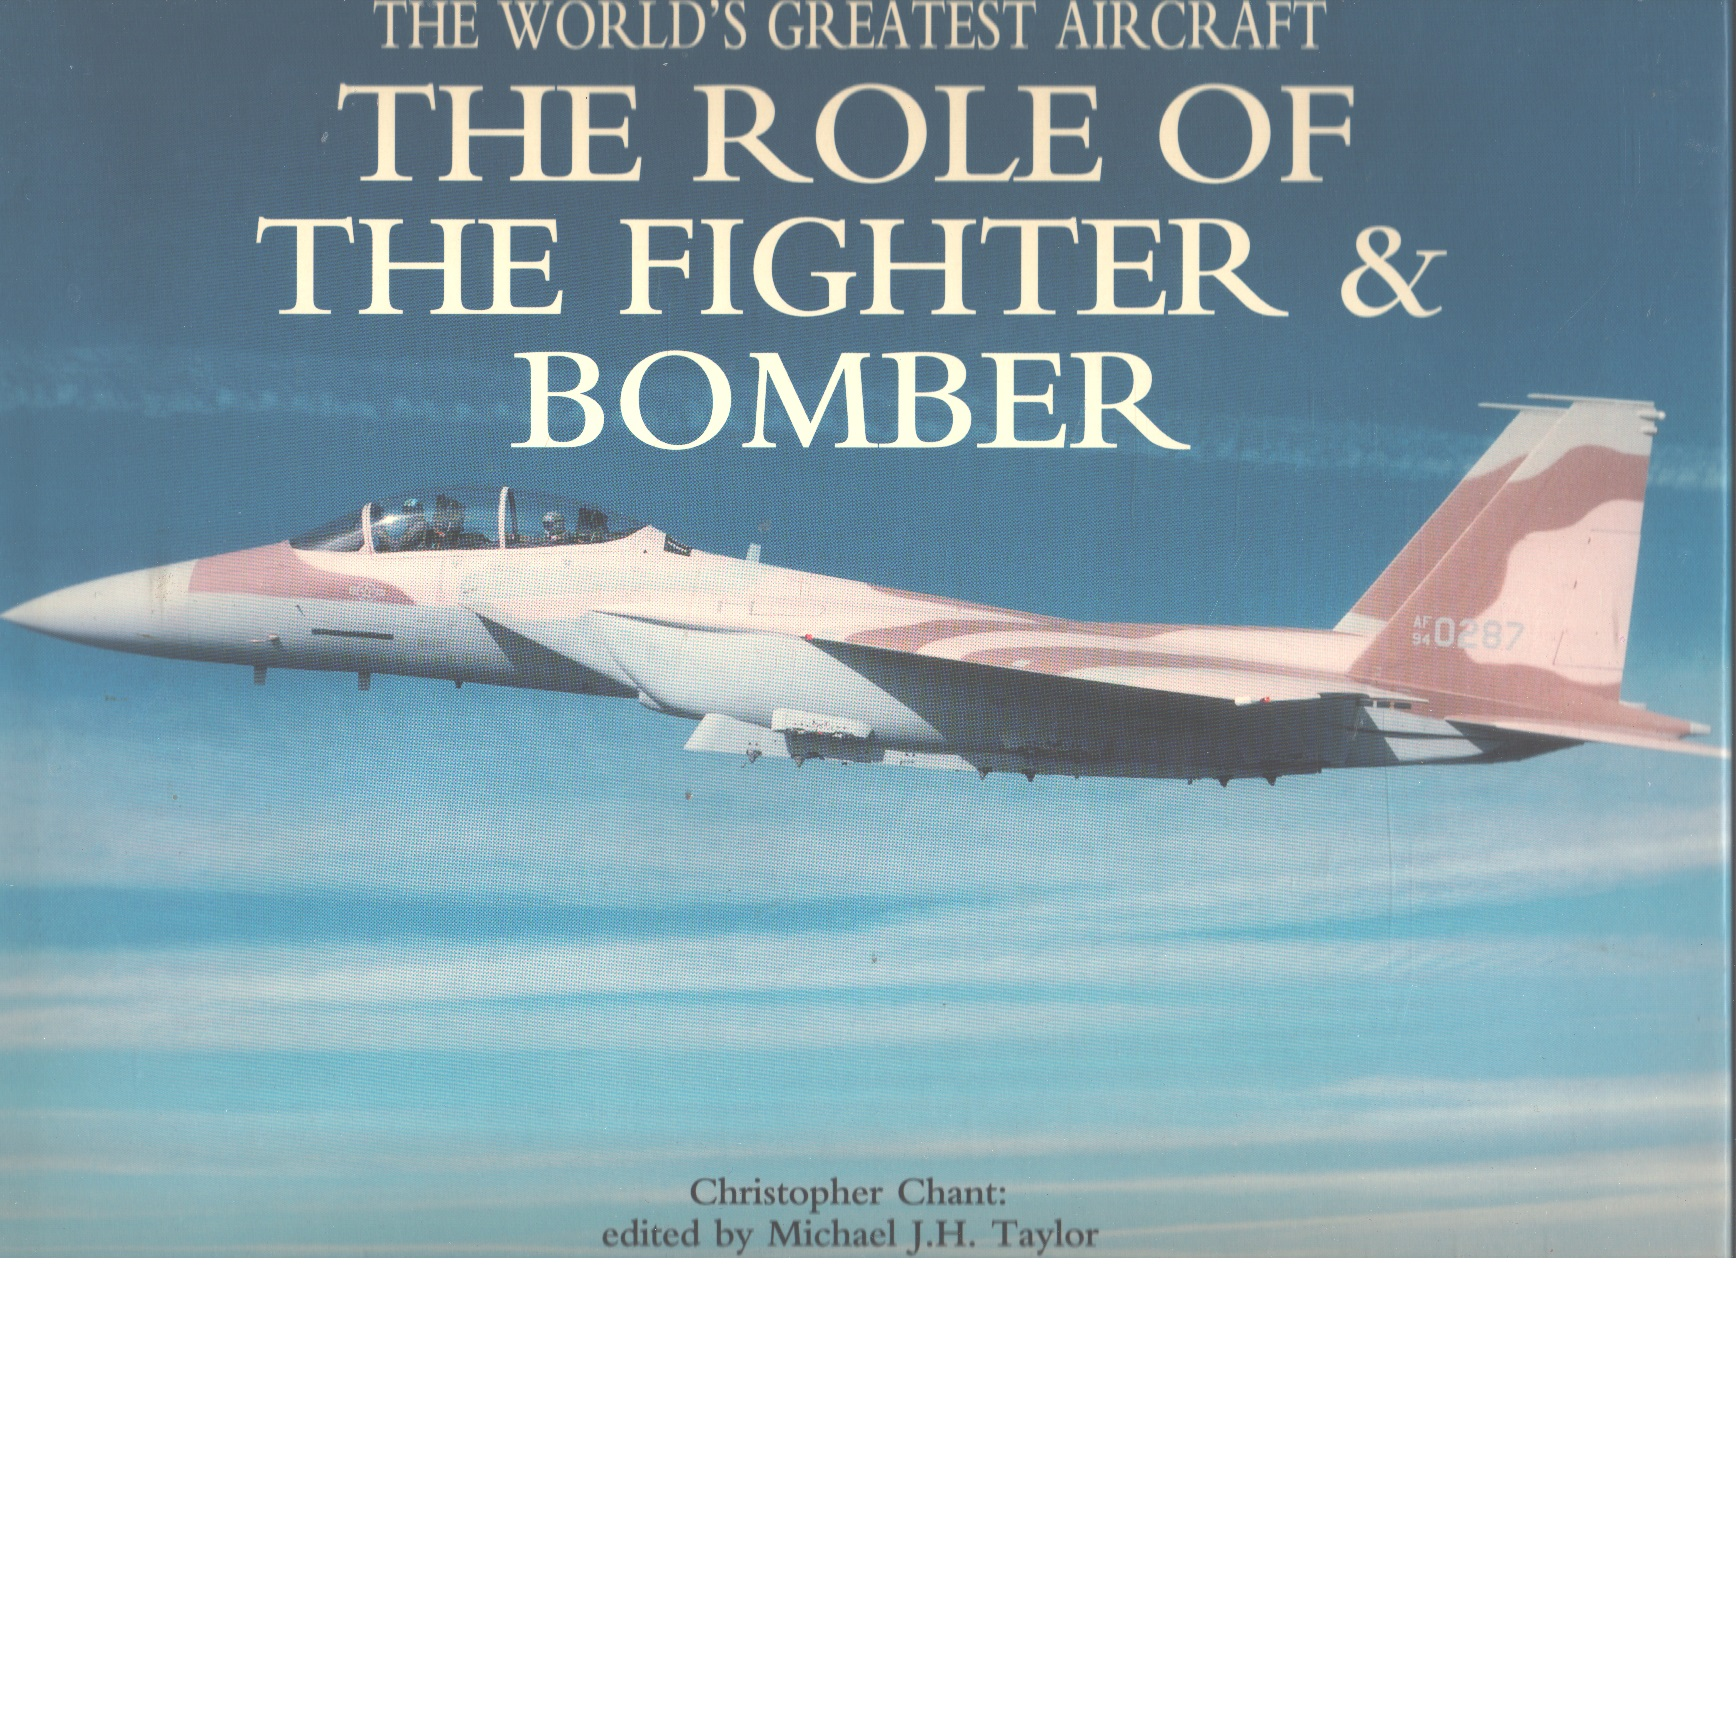 The role of the fighter and bomber (world's greatest aircraft) - Chant, Chris  And